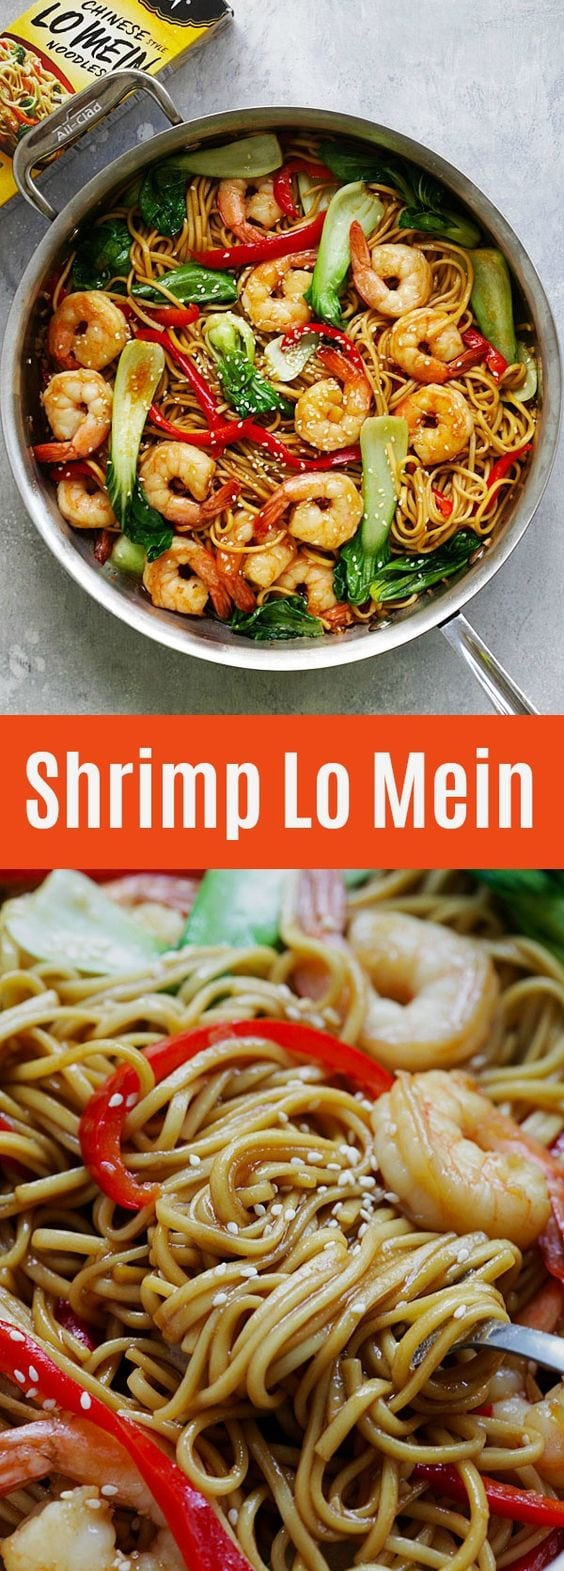 Shrimp Lo Mein Easy Delicious Recipes